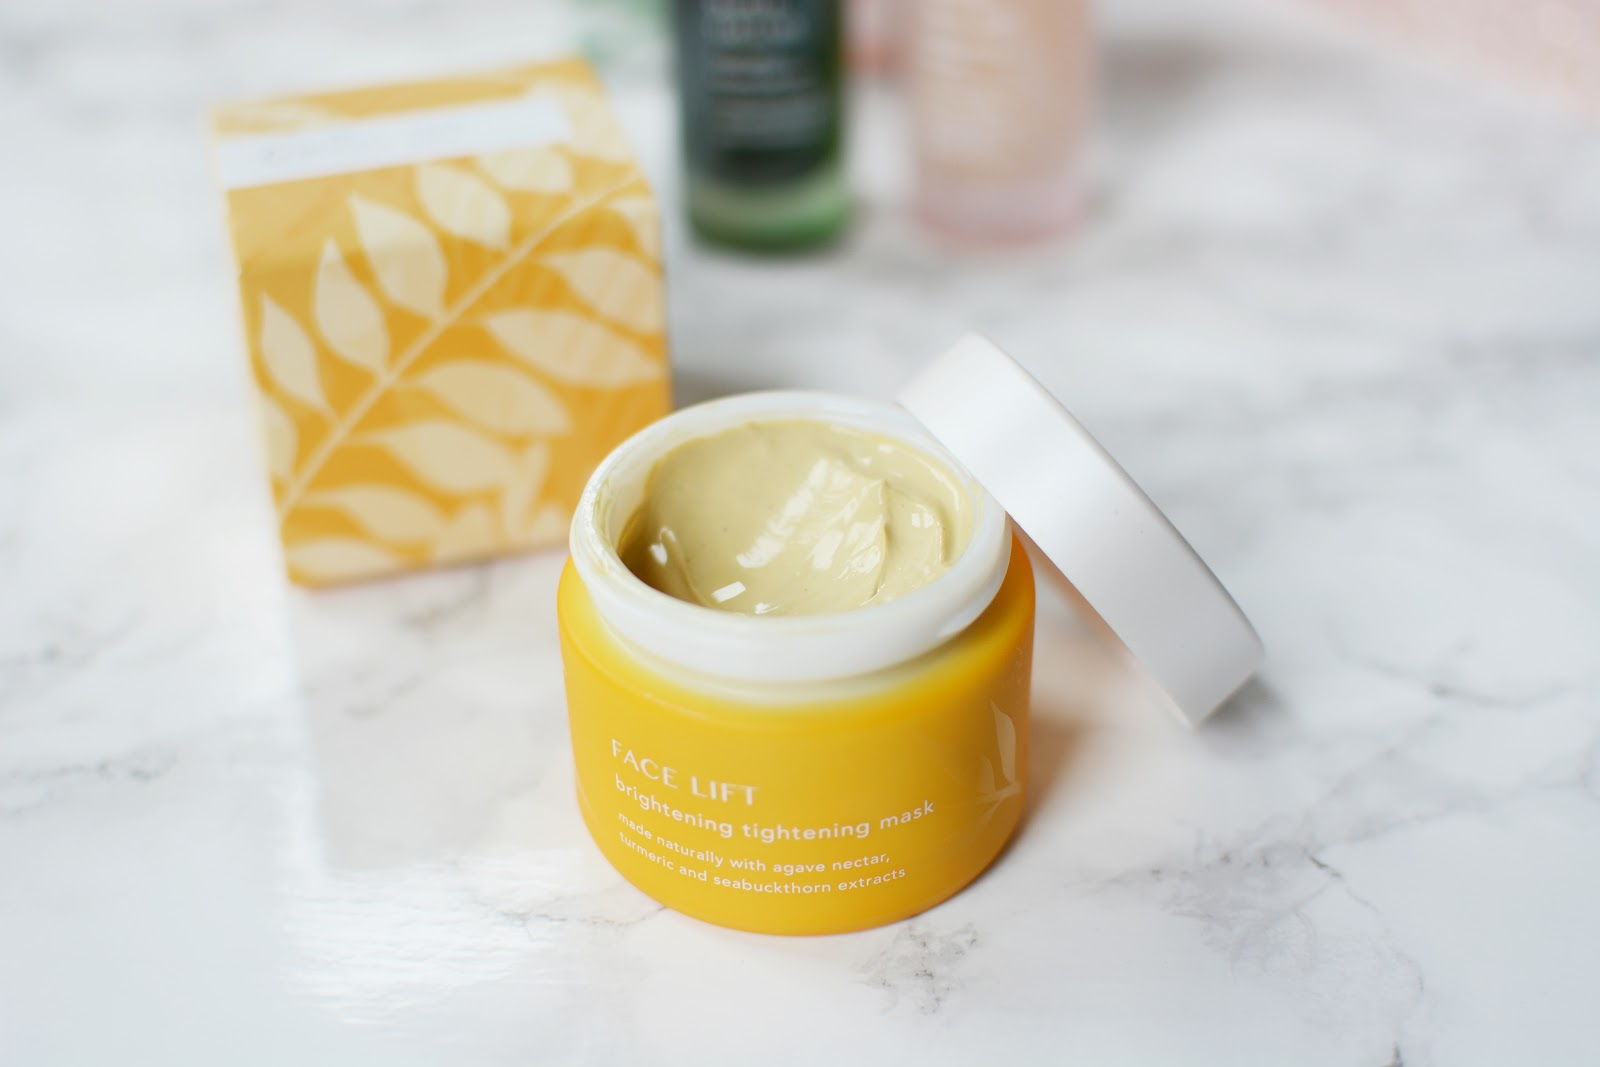 Tropic Skincare Face Lift Brightening Tightening Mask